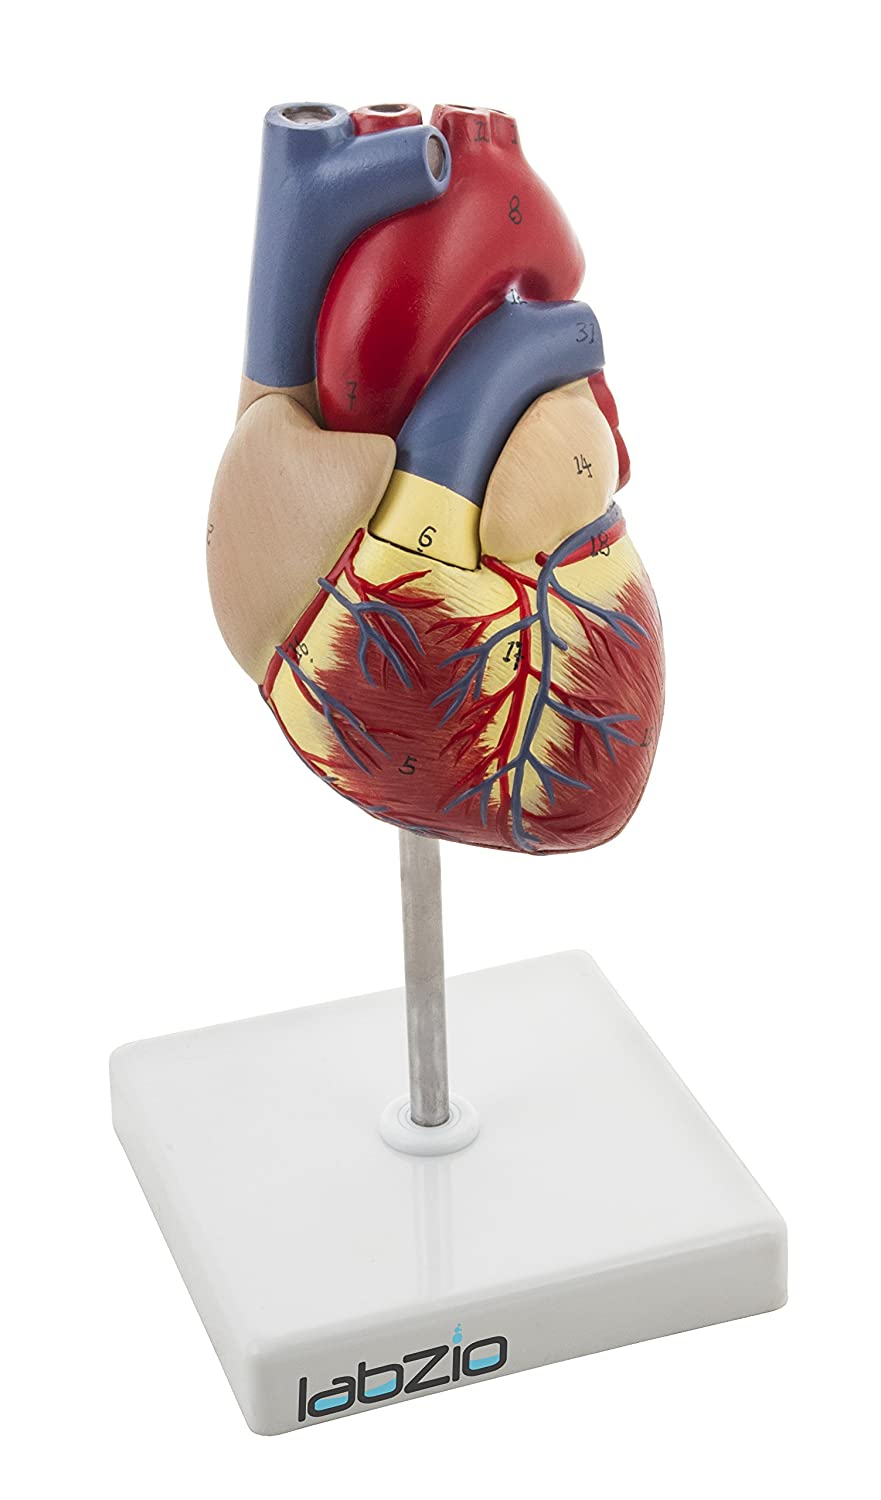 Labzio By Eisco Deluxe Natural Size Human Heart Anatomical Model